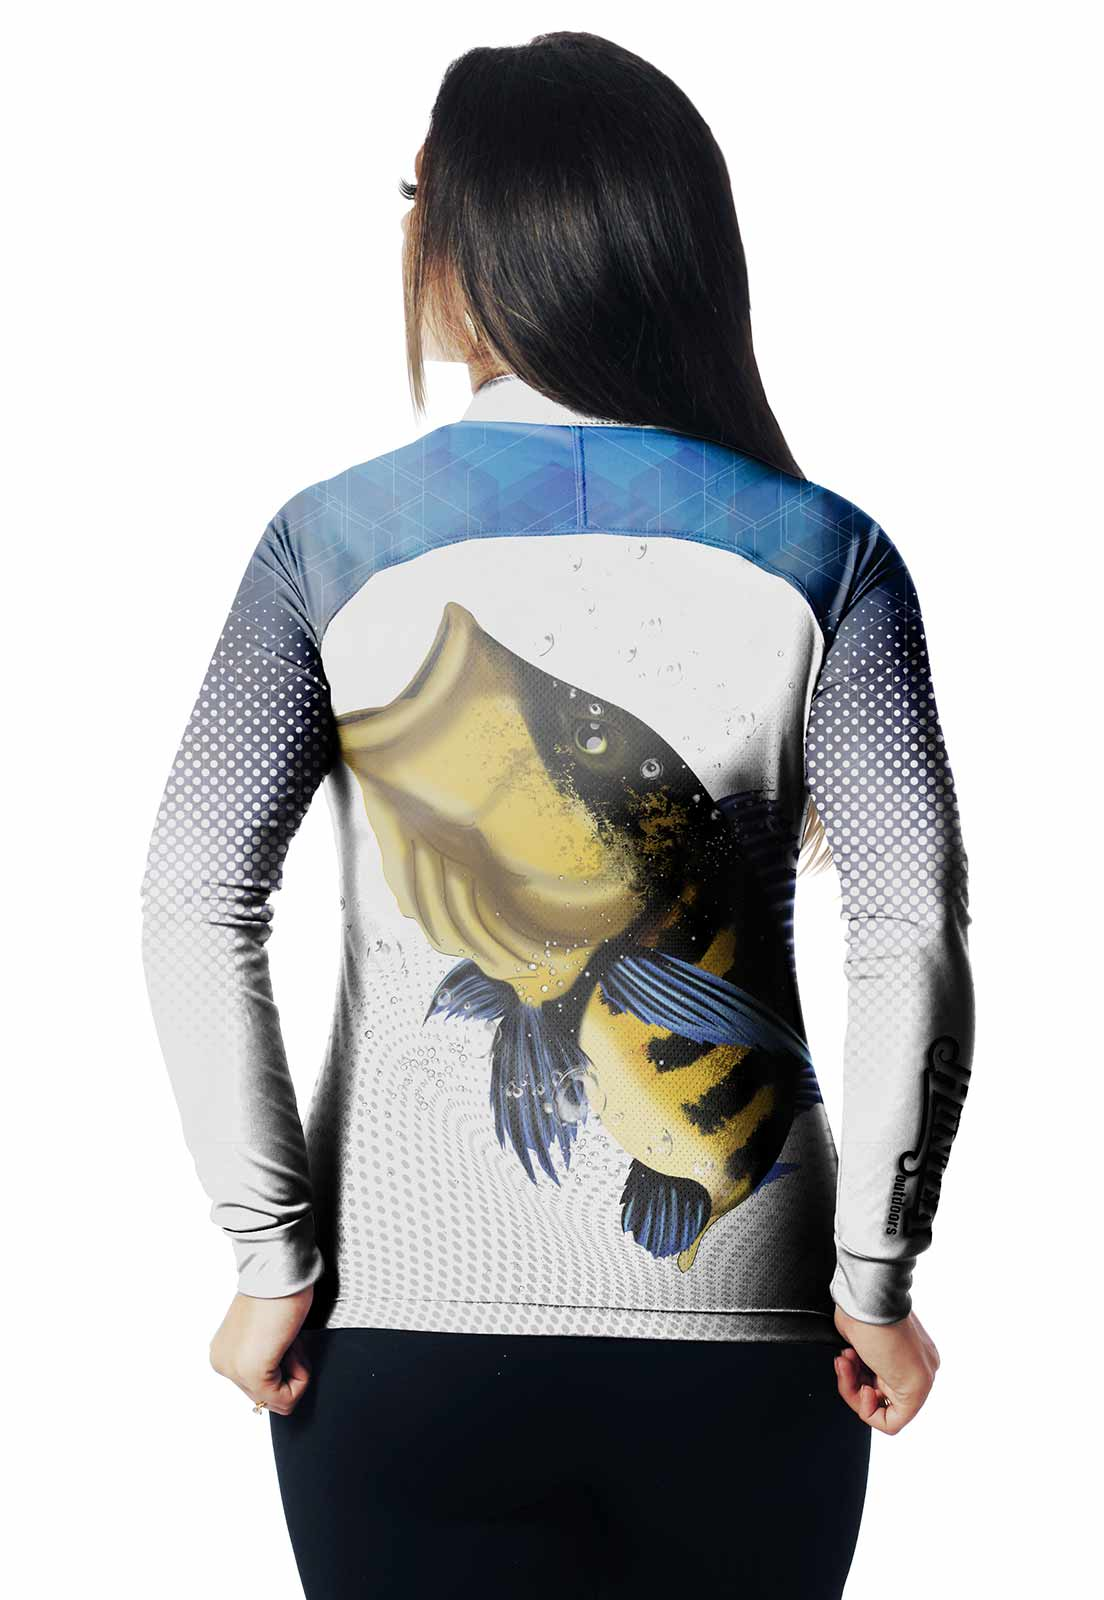 CAMISA DE PESCA FISH TUCUNARÉ 01 FEMININA + BANDANA GRÁTIS  - REAL HUNTER OUTDOORS